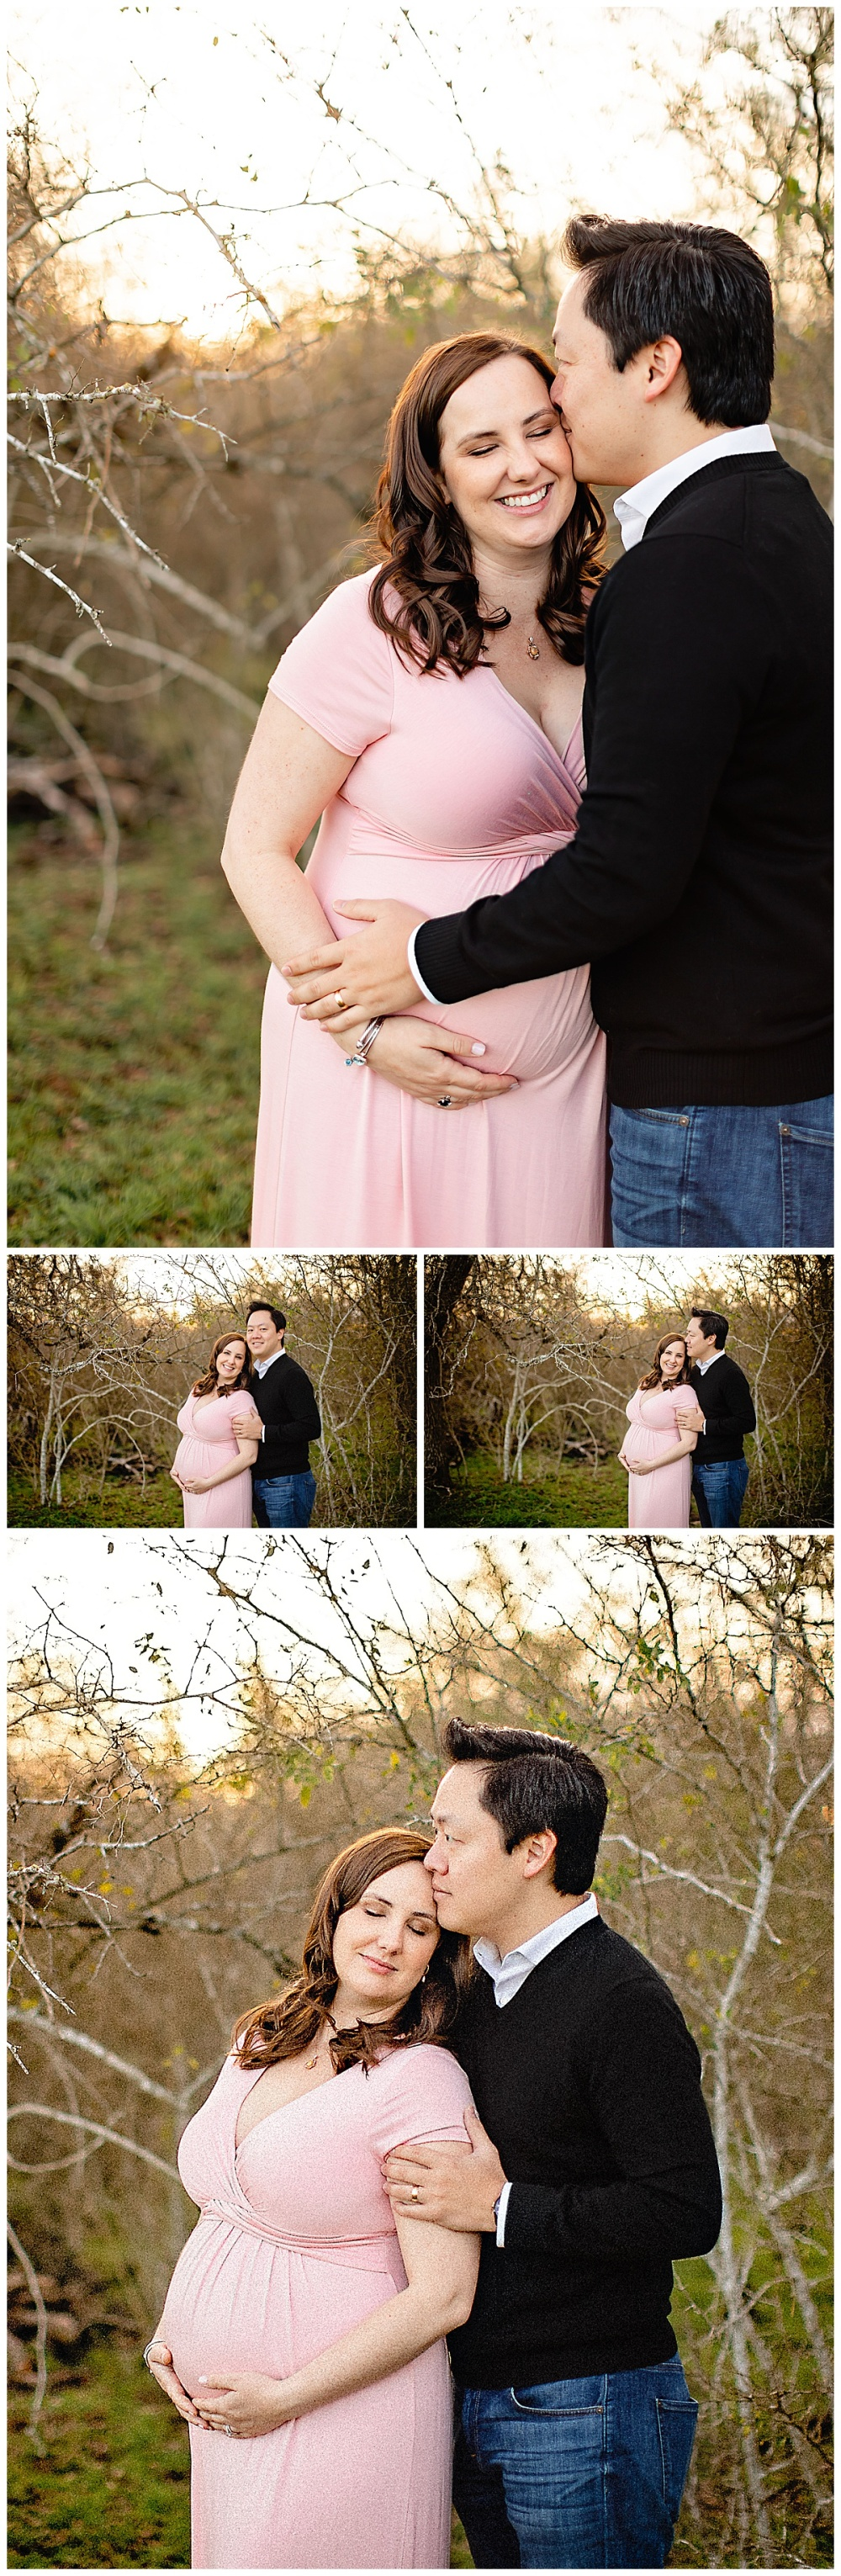 Maternity-Photographer-Texas-Carly-Barton-Photography-LaVernia-Photos_0002.jpg